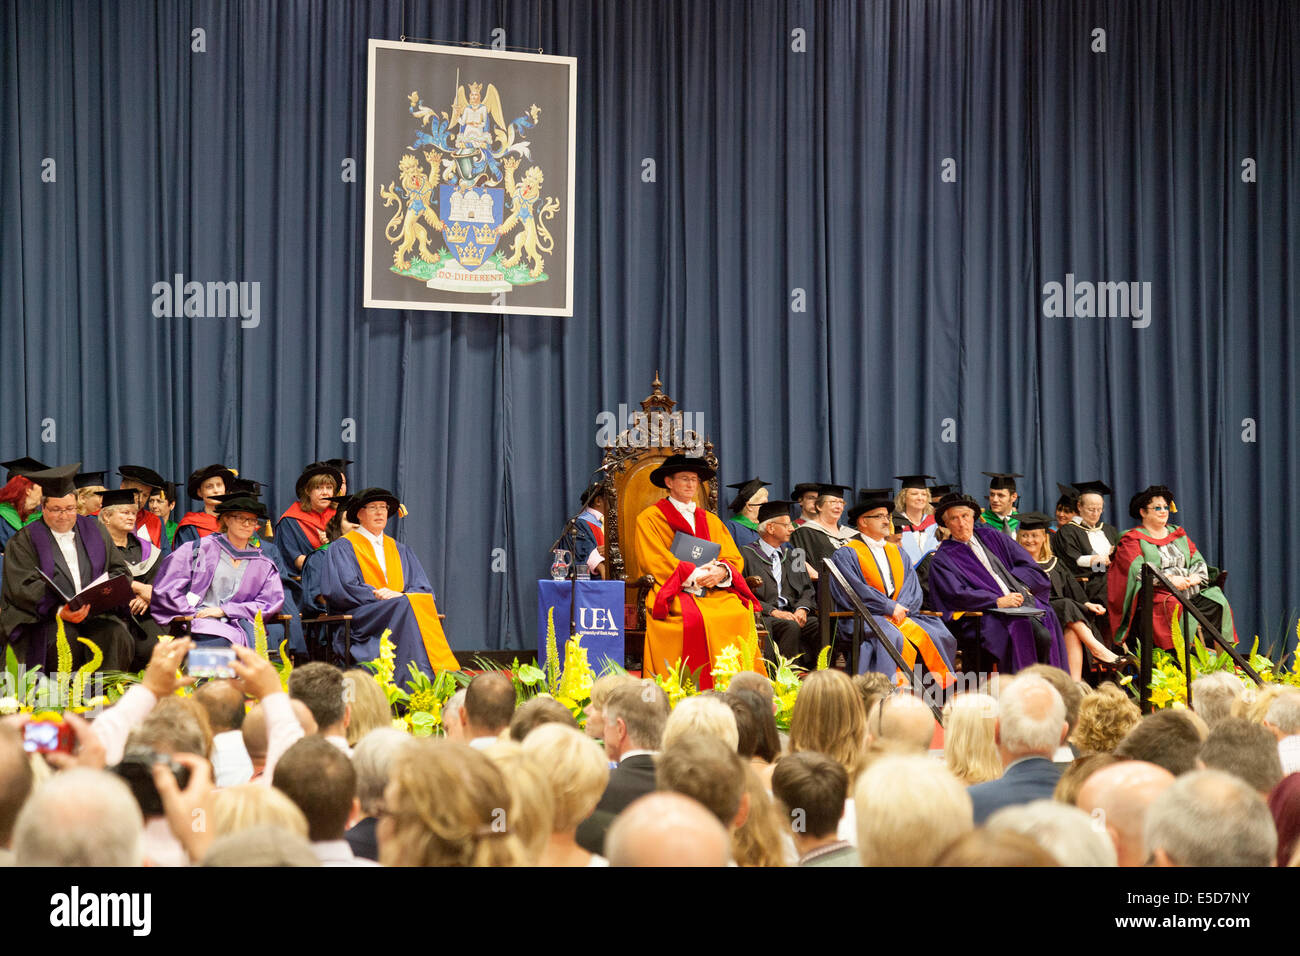 The University Fellows, Dons and Vice Chancellor at the Graduation ceremony, UEA ( University of East Anglia ), - Stock Image